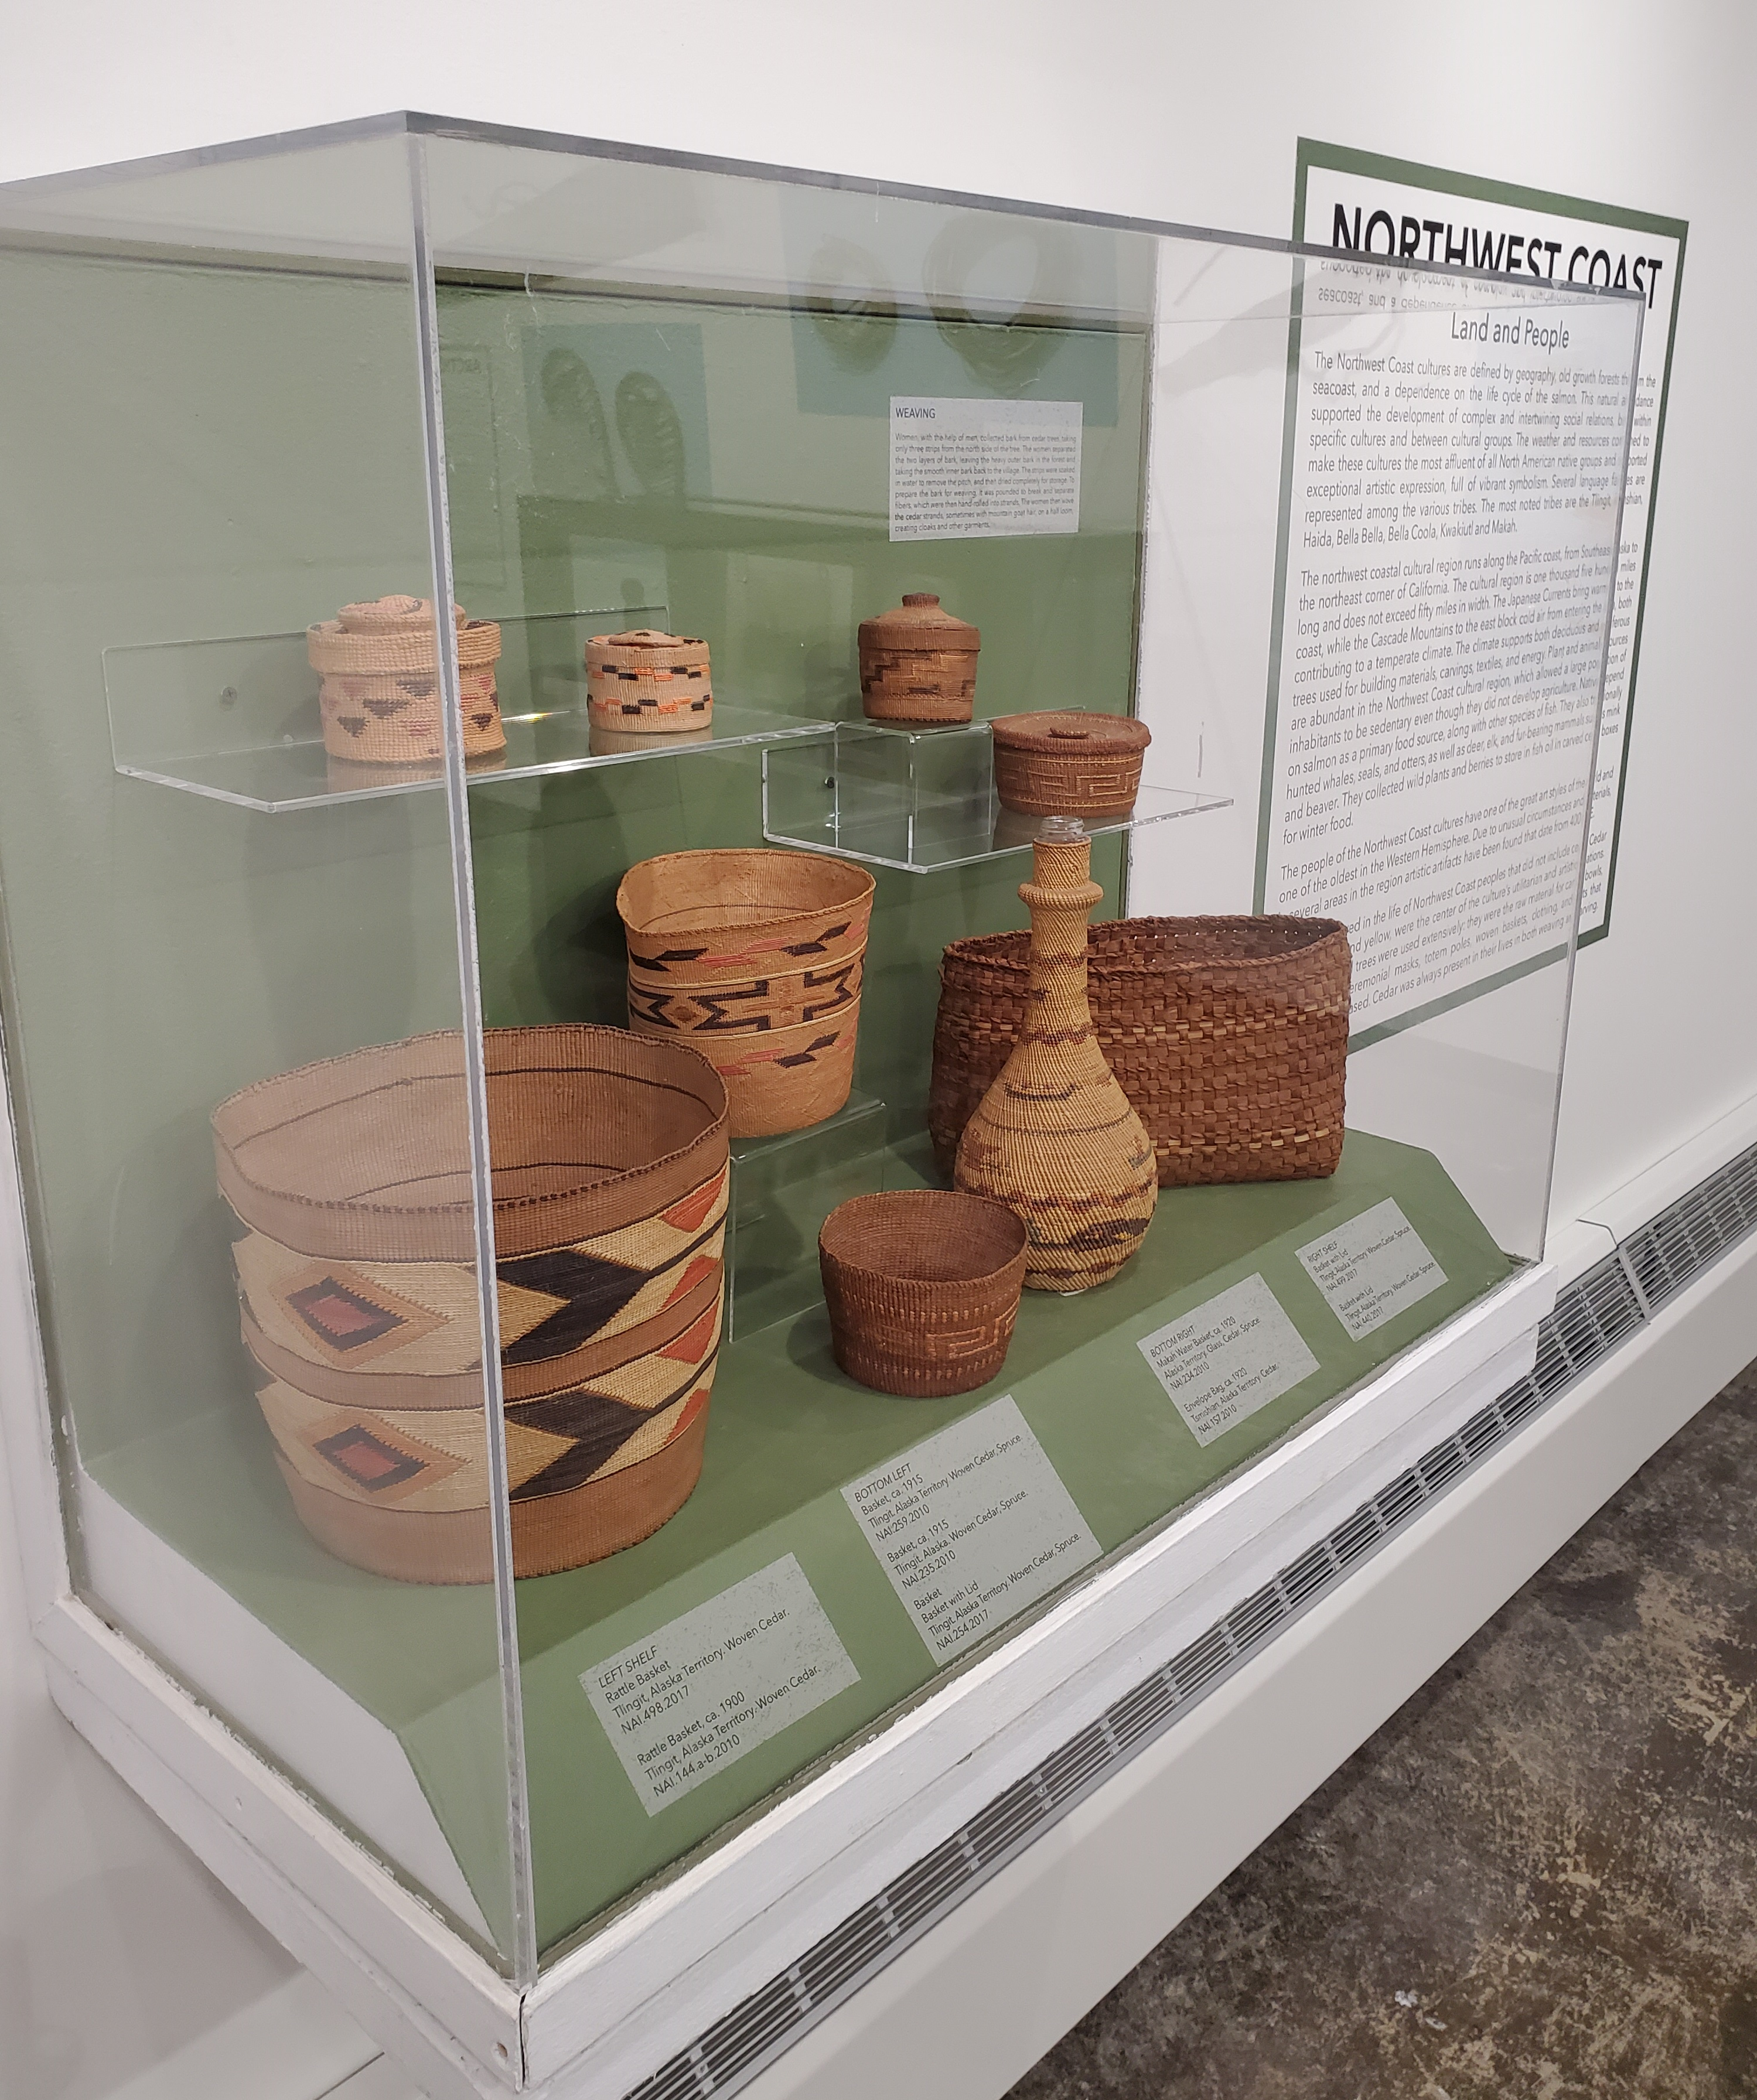 Display case from the Oak Native American Gallery featuring baskets and woven artifacts